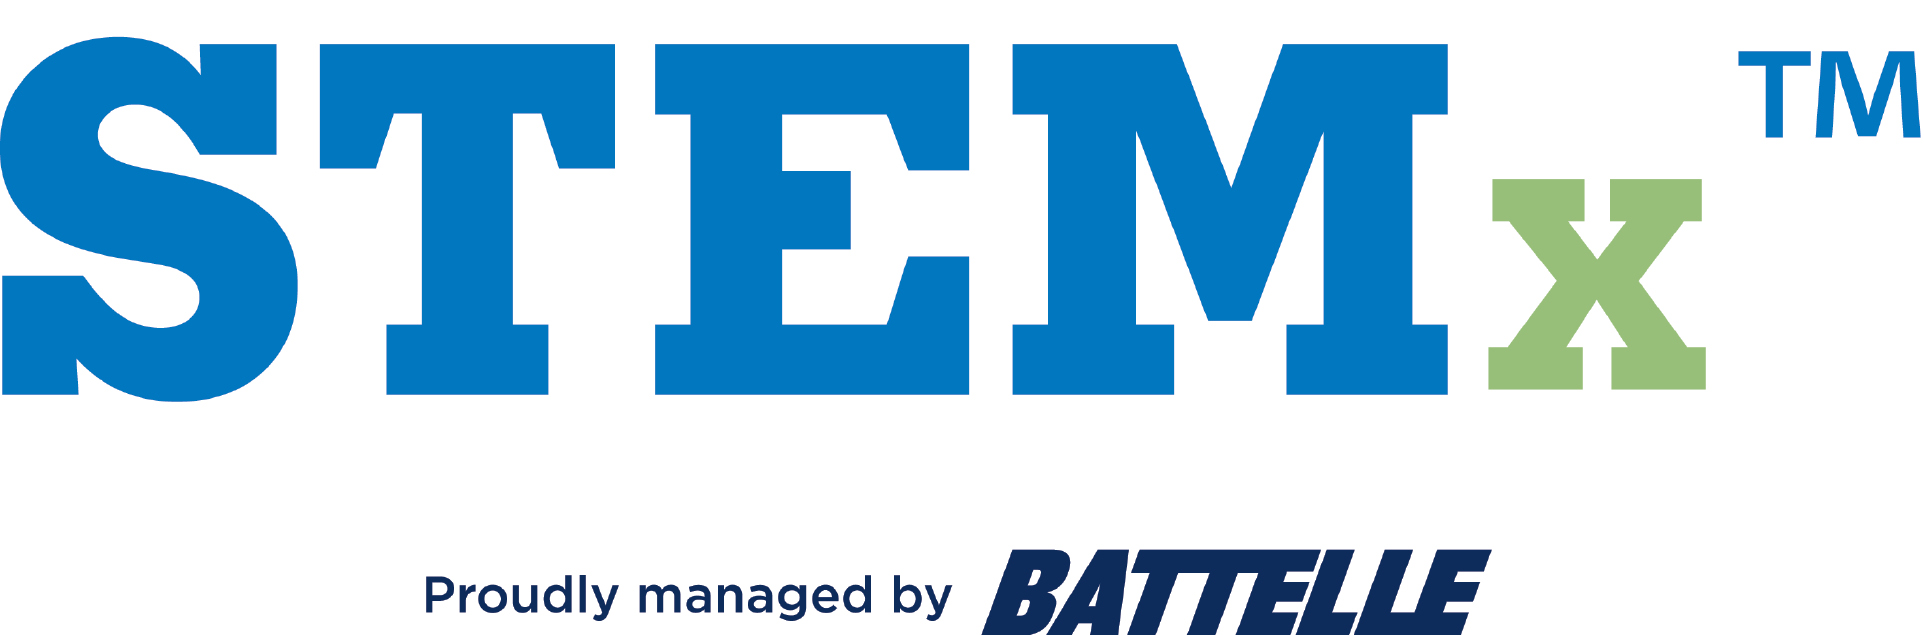 STEMx proudly managed by Battelle